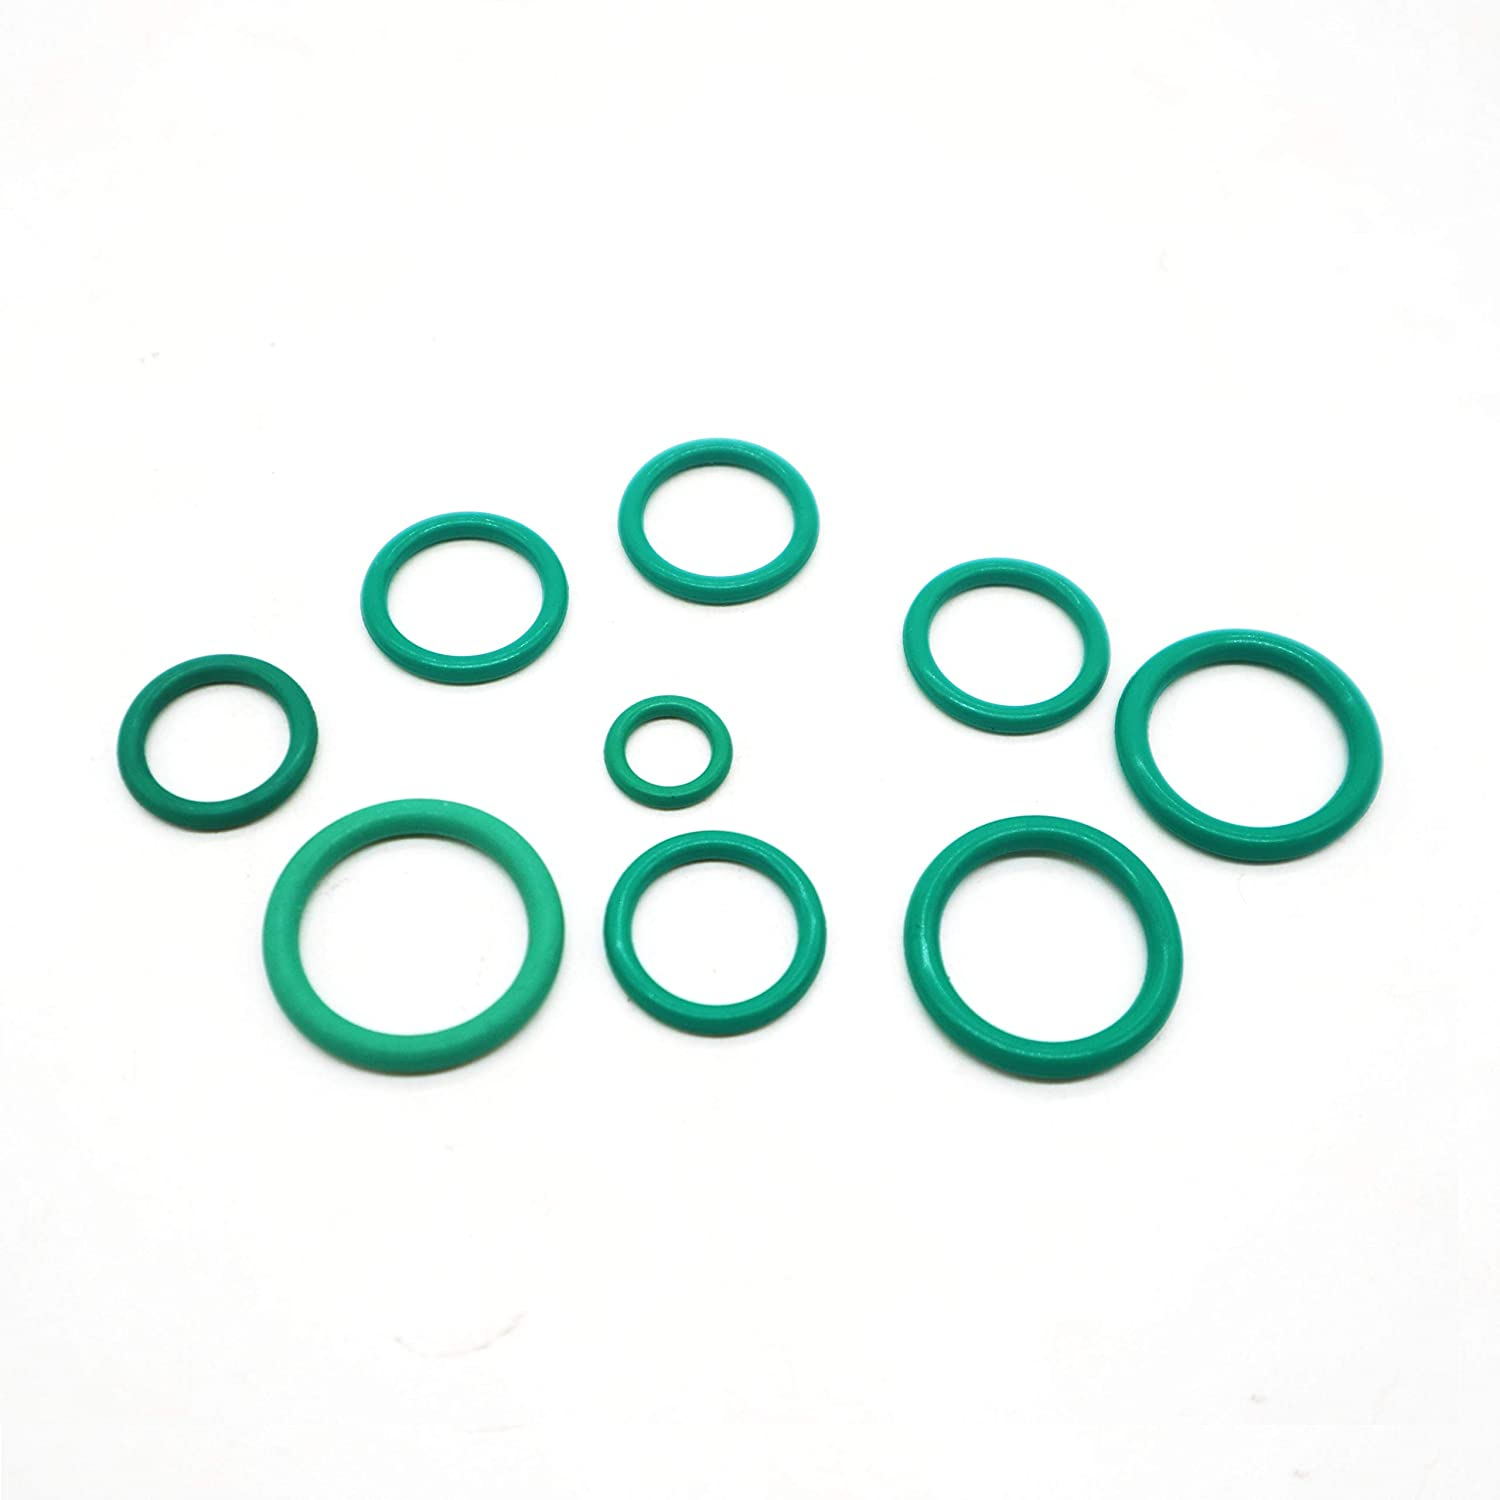 FKM Rubber O Rings Seal Assortment Set With Case 150PCS for Insulation Gasket Plumbing Air Conditioning Car Auto Vehicle Repair General Repair 15 Popular sizes Universal Use Green